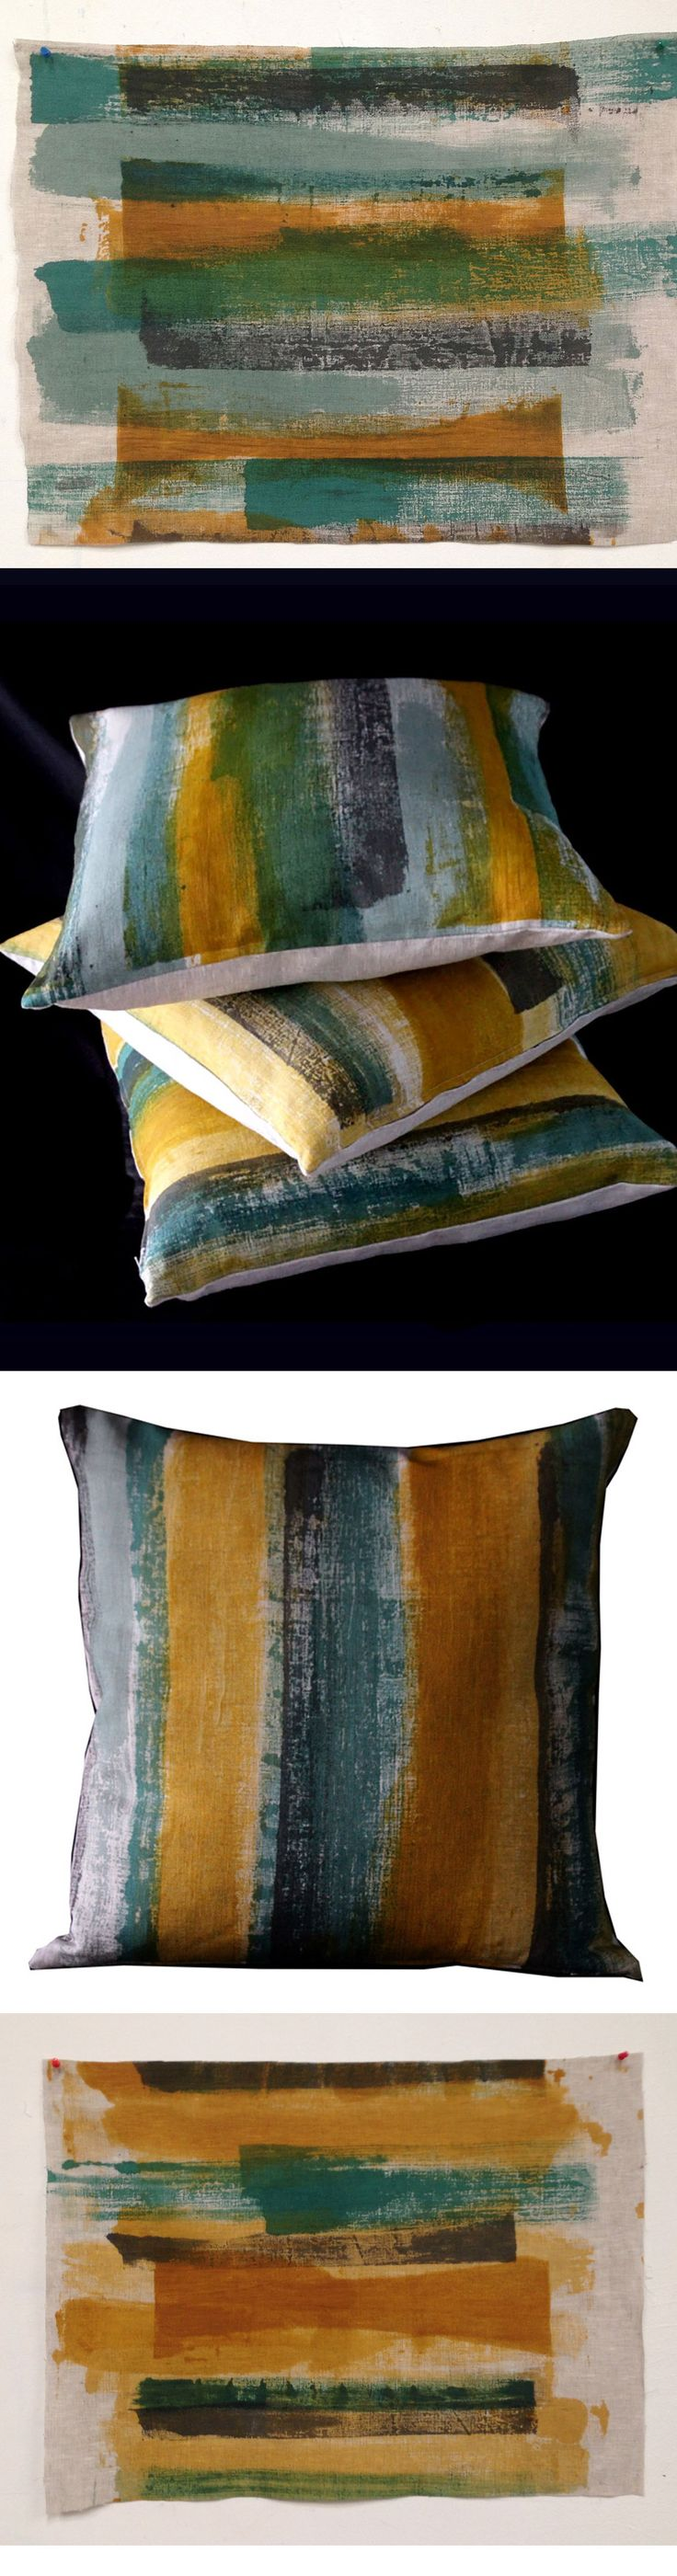 Handpainted and printed on linen. Made to order in NZ by Katie Smith. Smitten Design Textiles